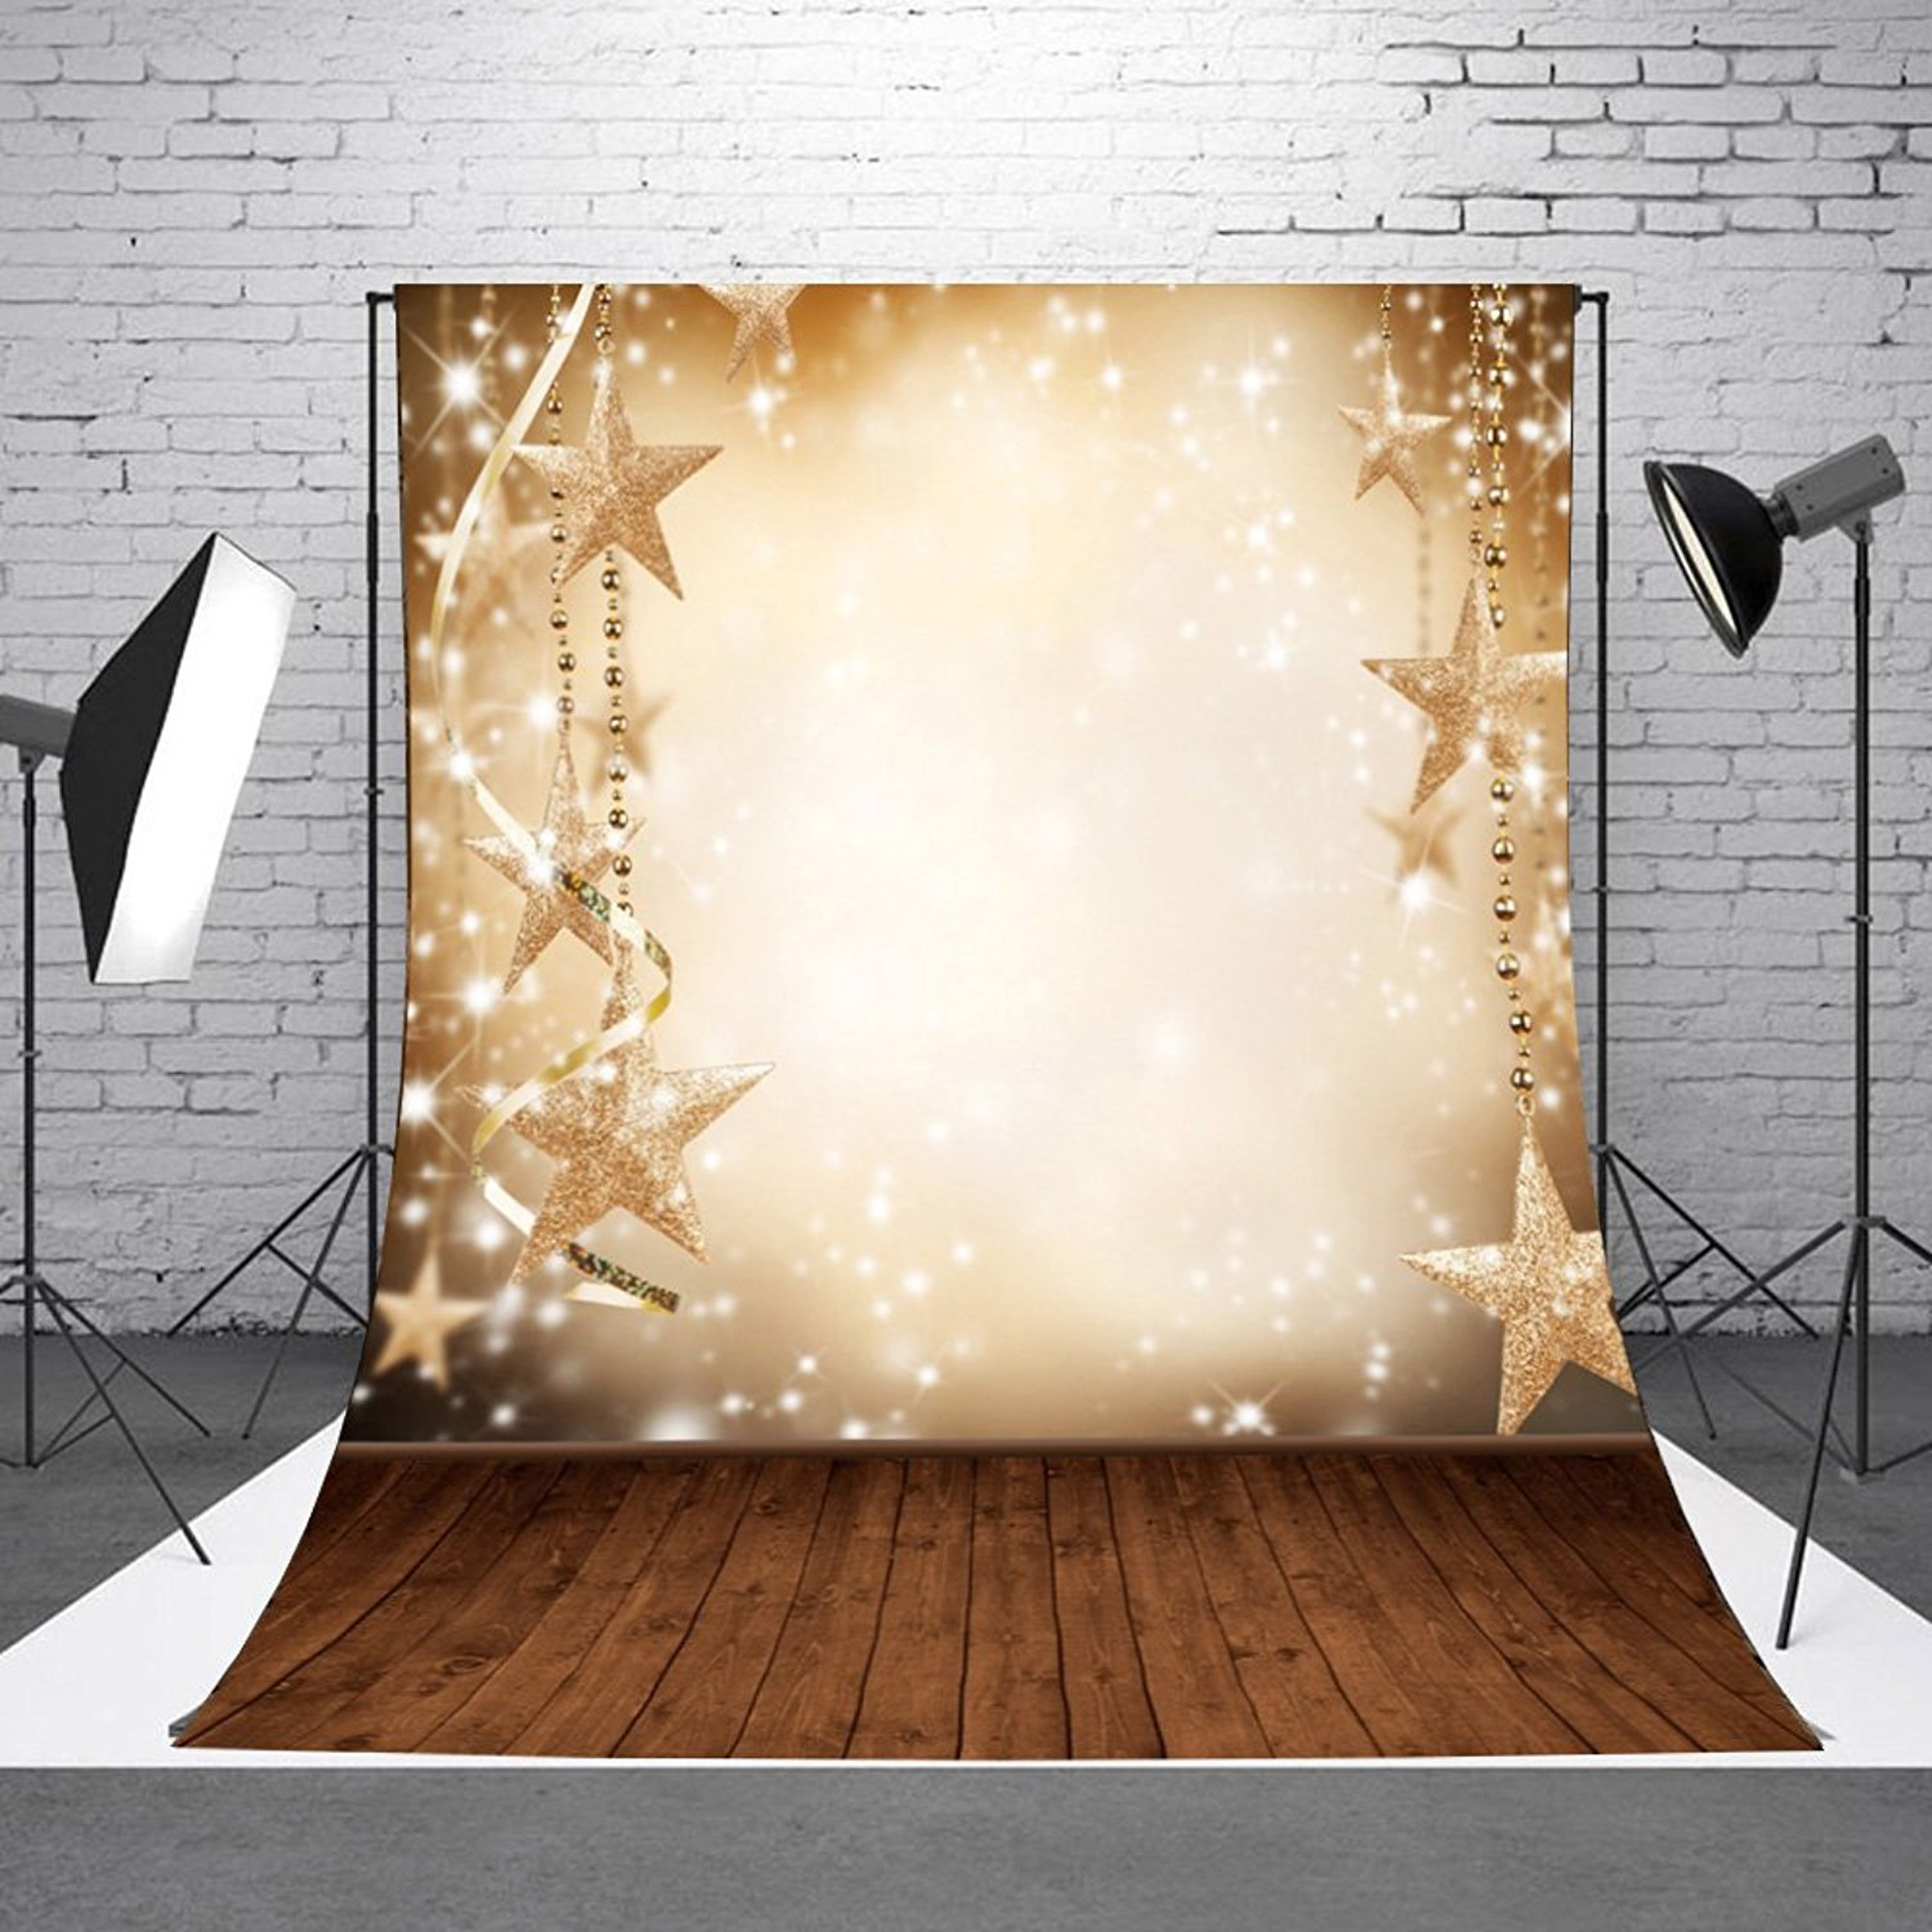 NK HOME Studio Photo Video Photography Backdrops Vinyl Fabric Christmas Holiday Party Decorations Background Screen Props 3x5ft 30+ Colors